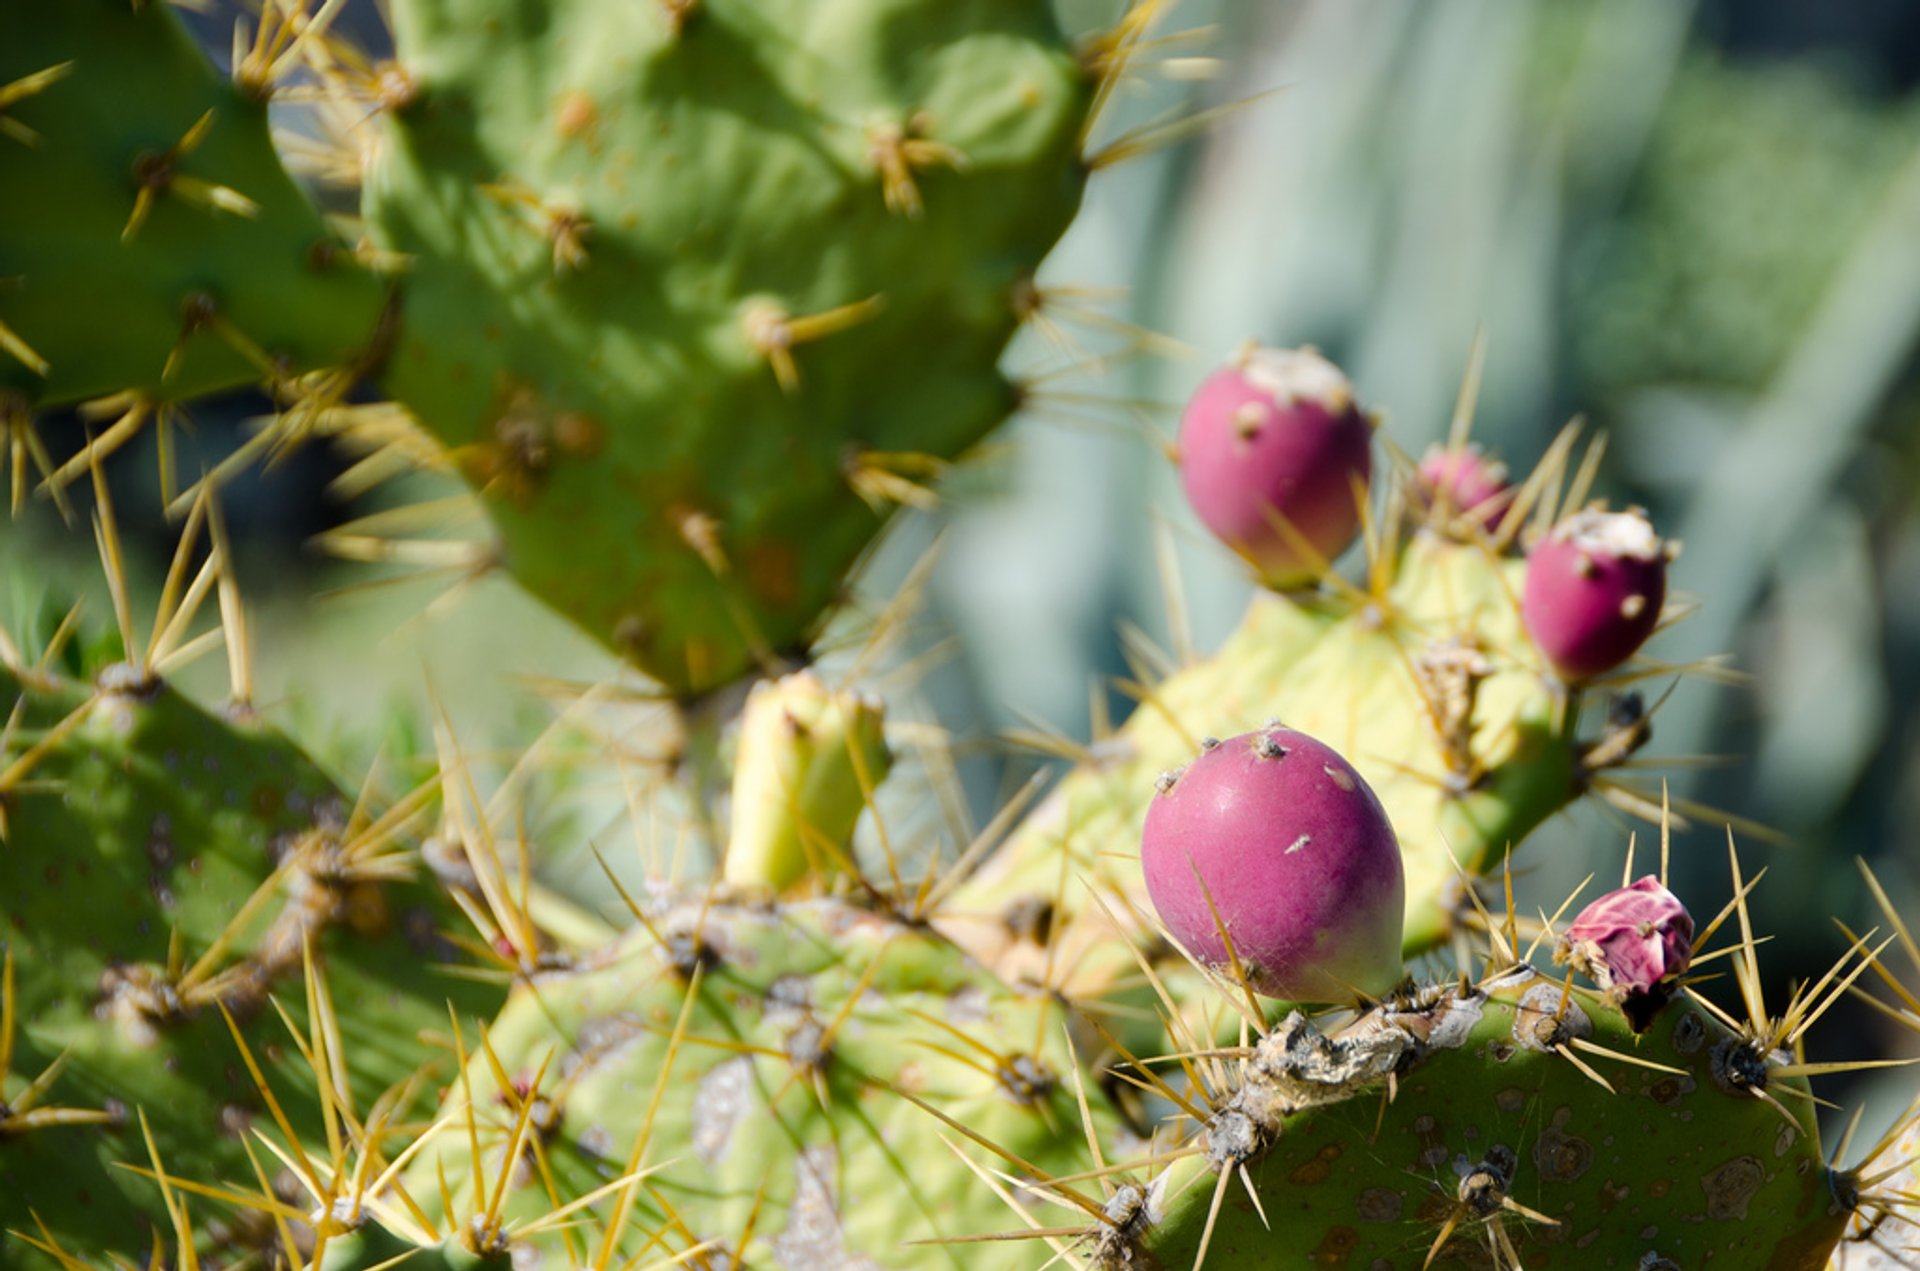 Tuno or Prickly Pear in Canary Islands 2019 - Best Time